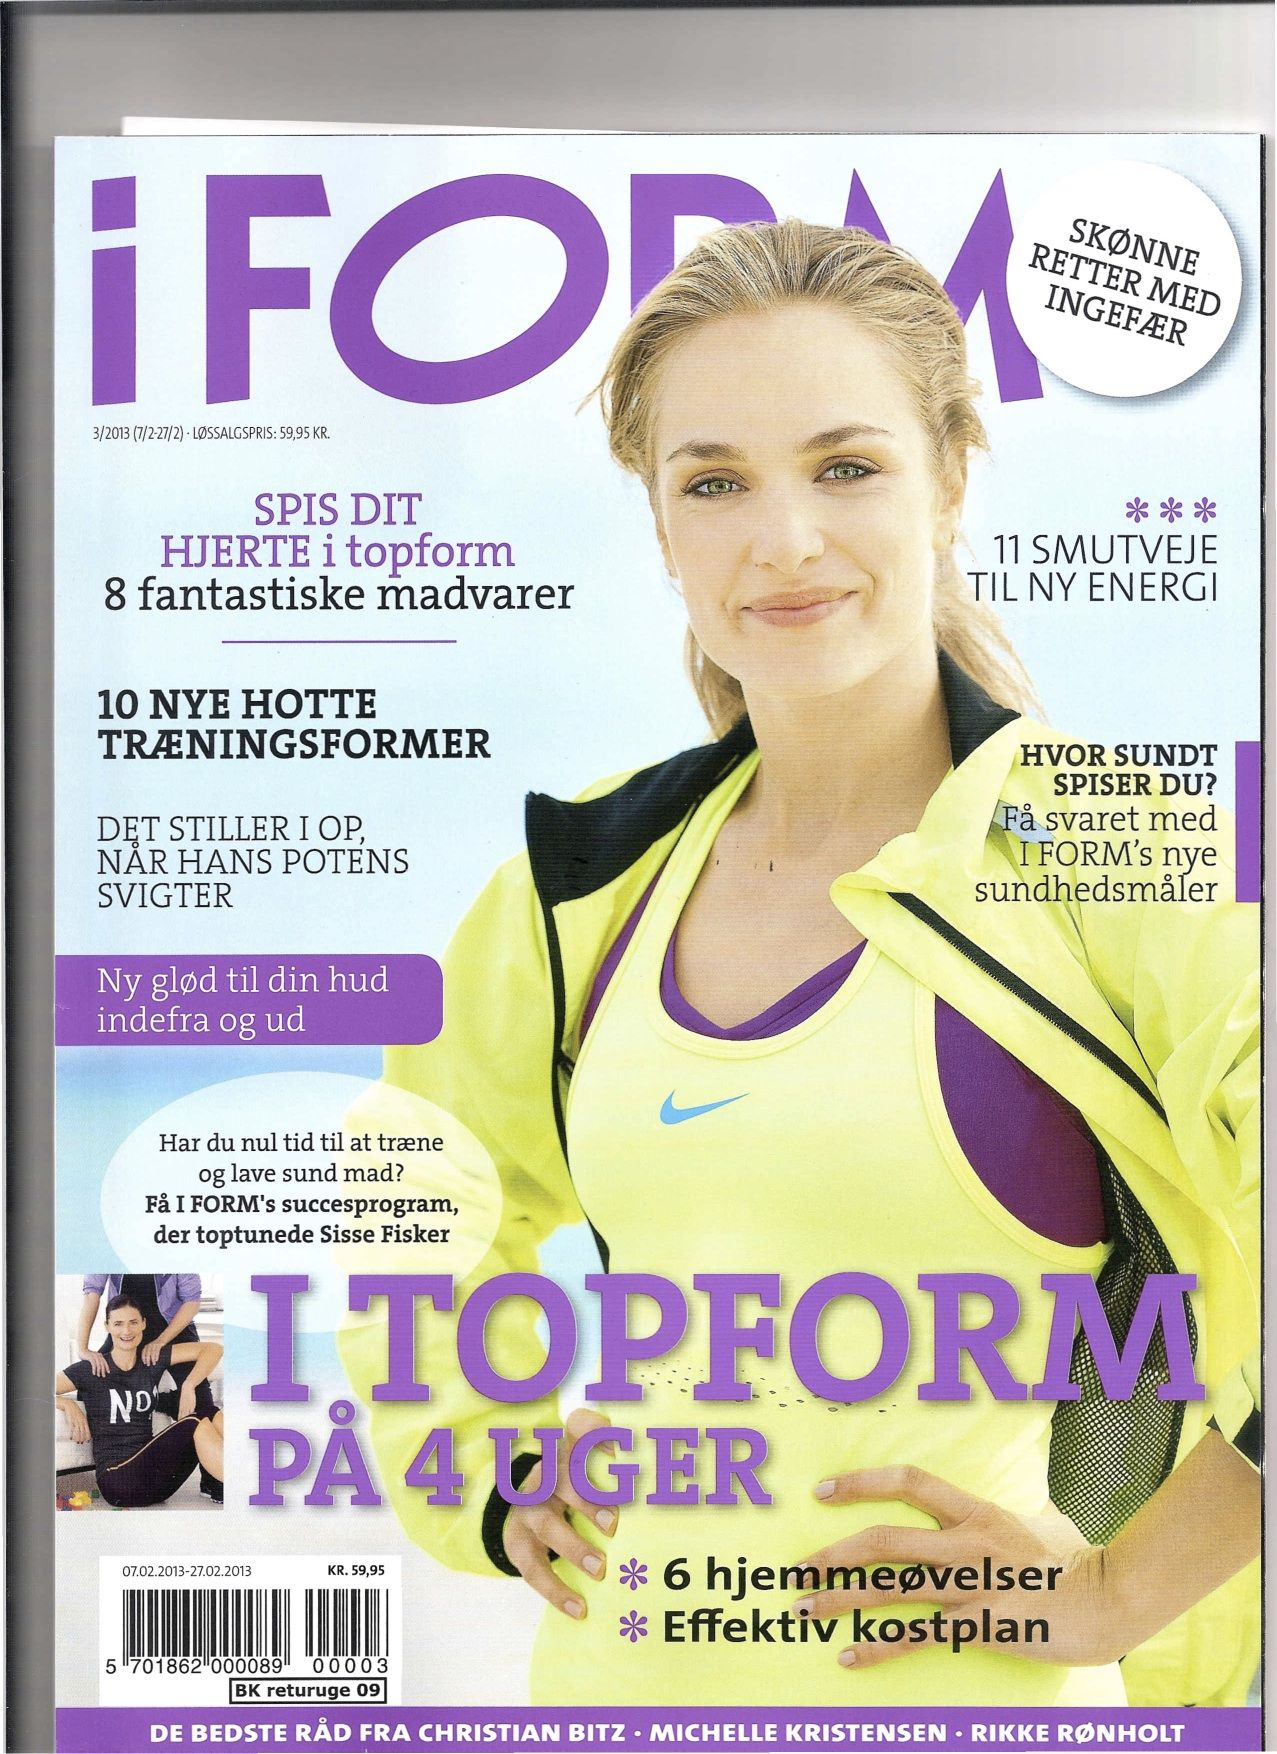 The Largest Scandinavian Health Magazine I Form In Shape In Denmark Norway Sweden And Finland Wrote About Yogastr Health Magazine Yoga Journal Yogi Times